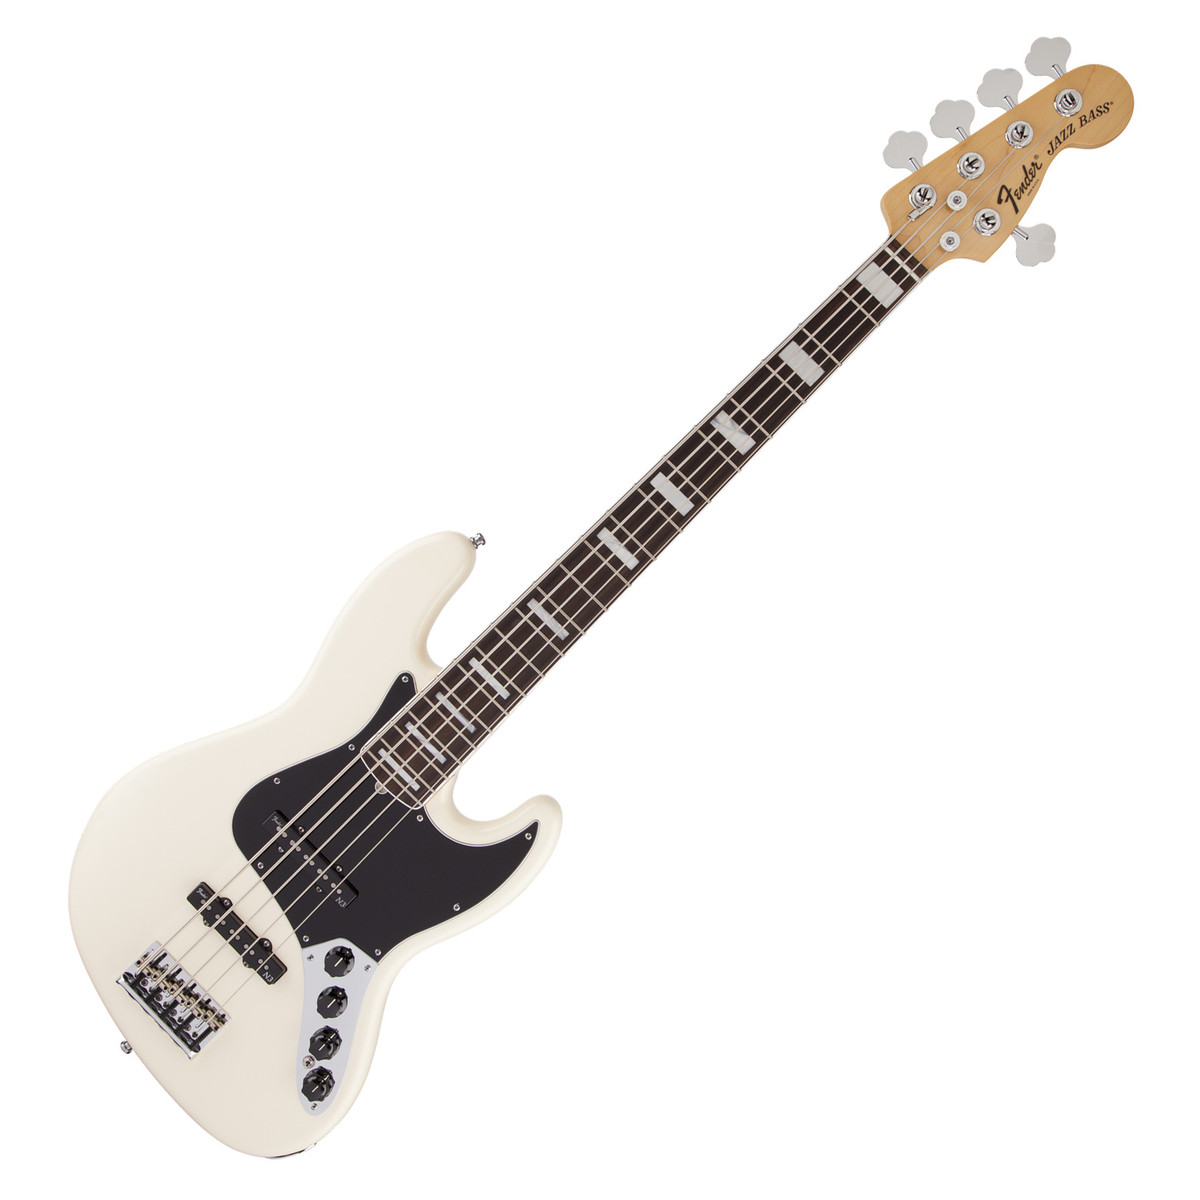 Circuito Jazz Bass Pasivo : Disc fender american deluxe jazz bass v olympic white en